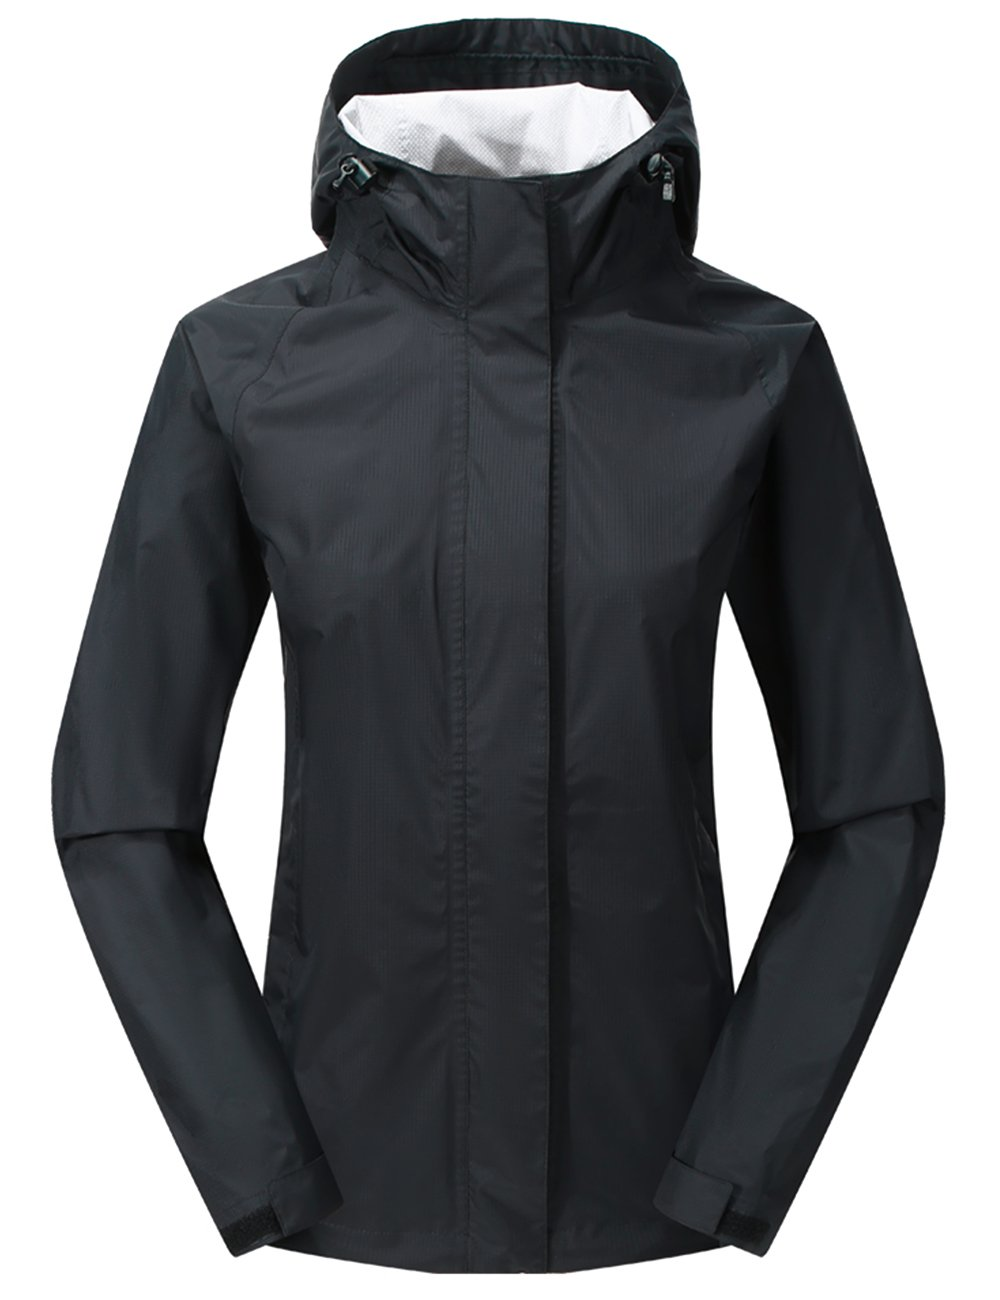 Diamond Candy Women's Mountain Waterproof Jacket